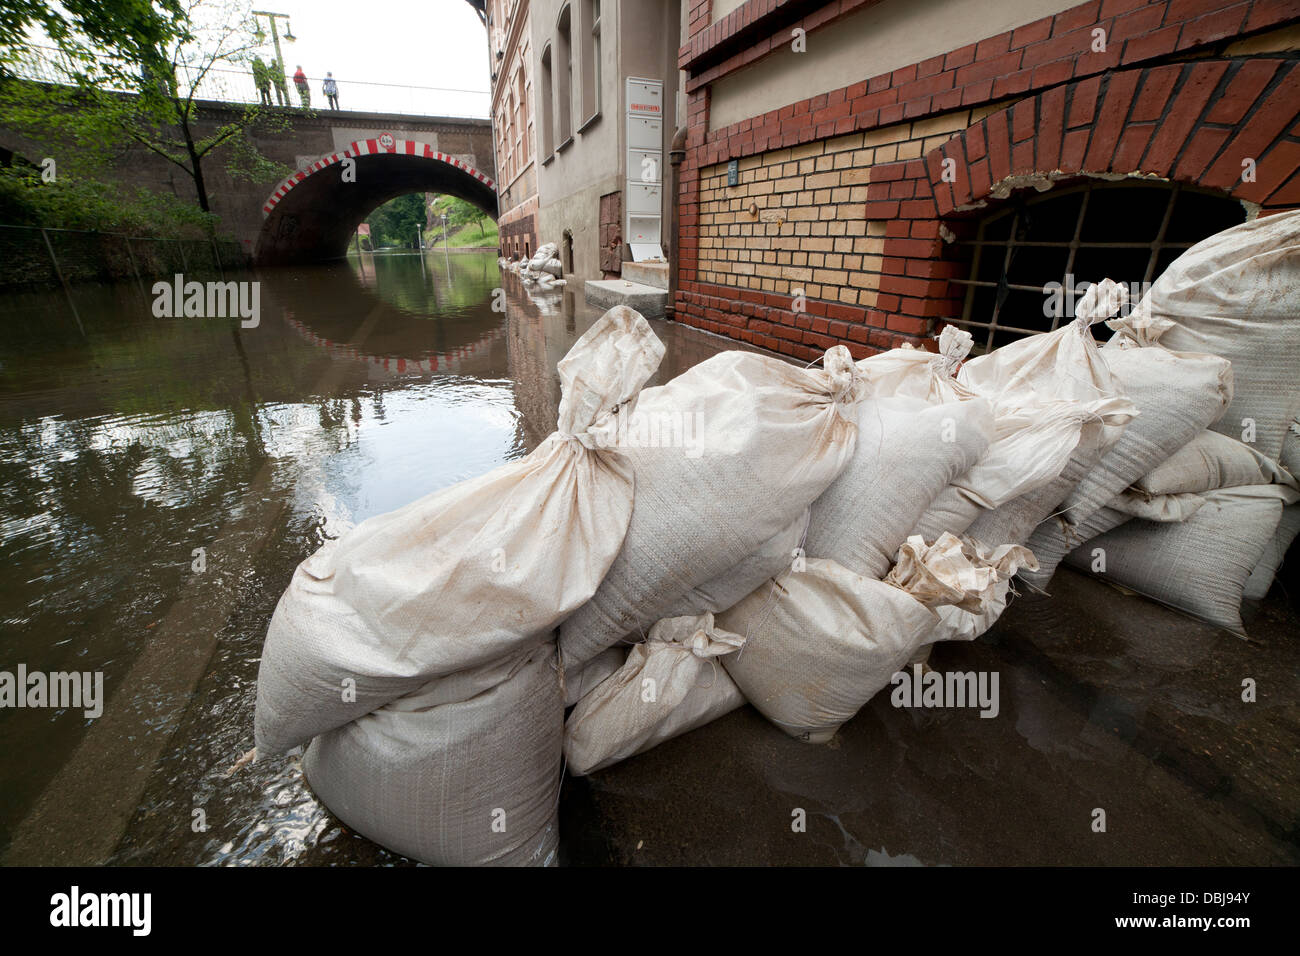 sandbags across the cellar windows of a house as protection against flooding of the river Saale in Halle (Germany); - Stock Image